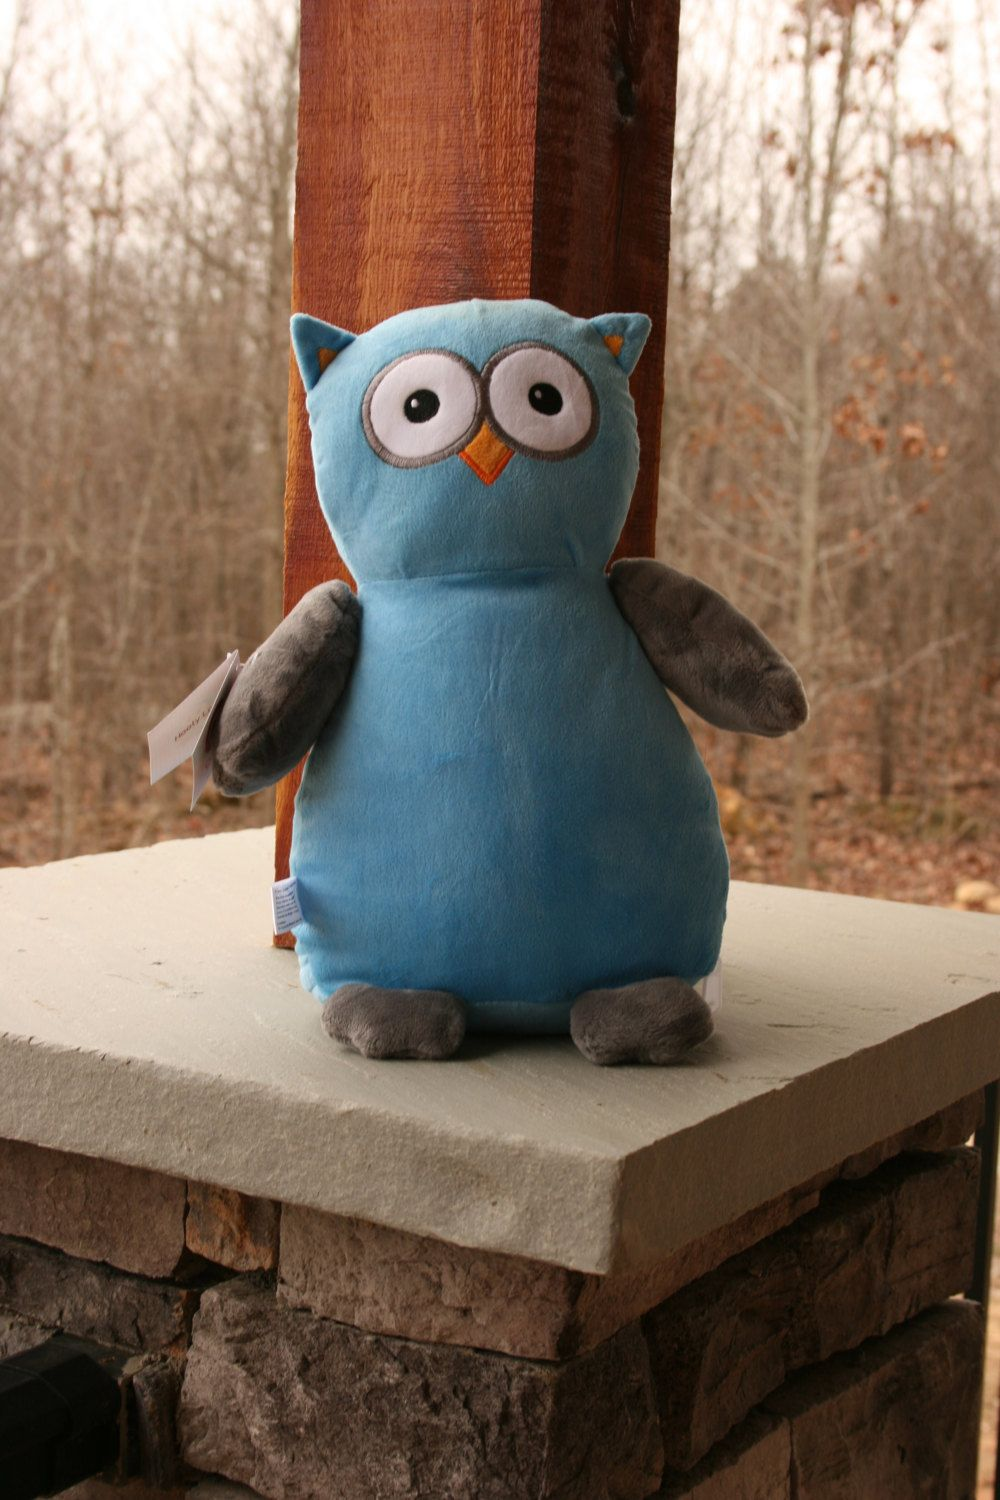 Monogrammed Plush Owl Baby Shower Gift by DoubleBMonograms on Etsy